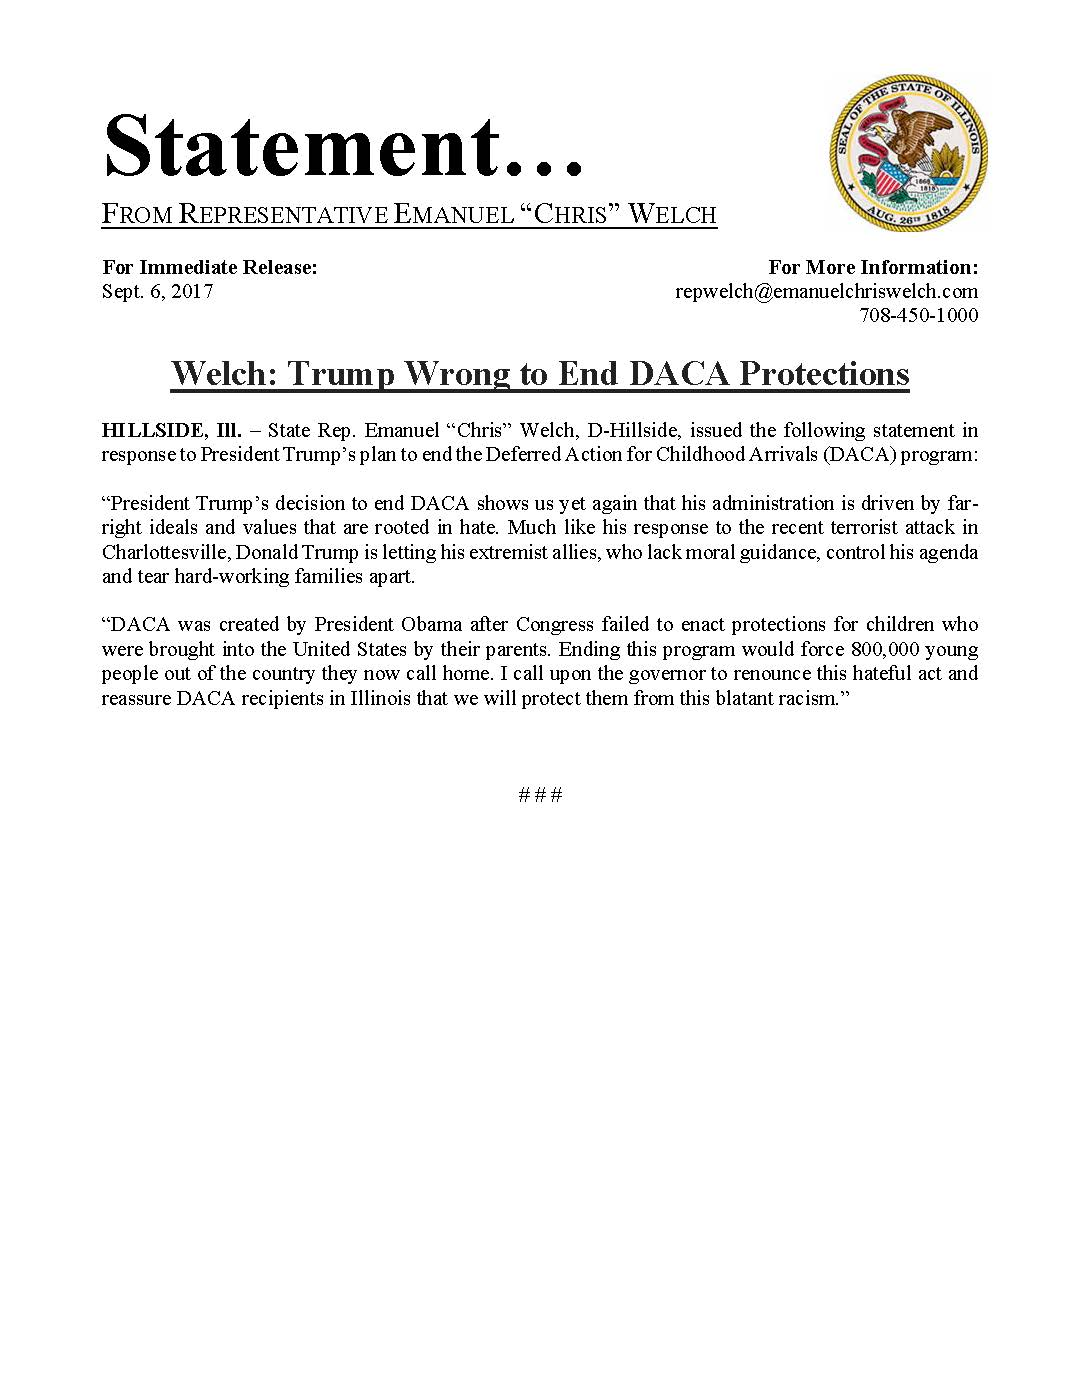 Welch: Trump Wrong to End DACA Protections  (September 6, 2017)